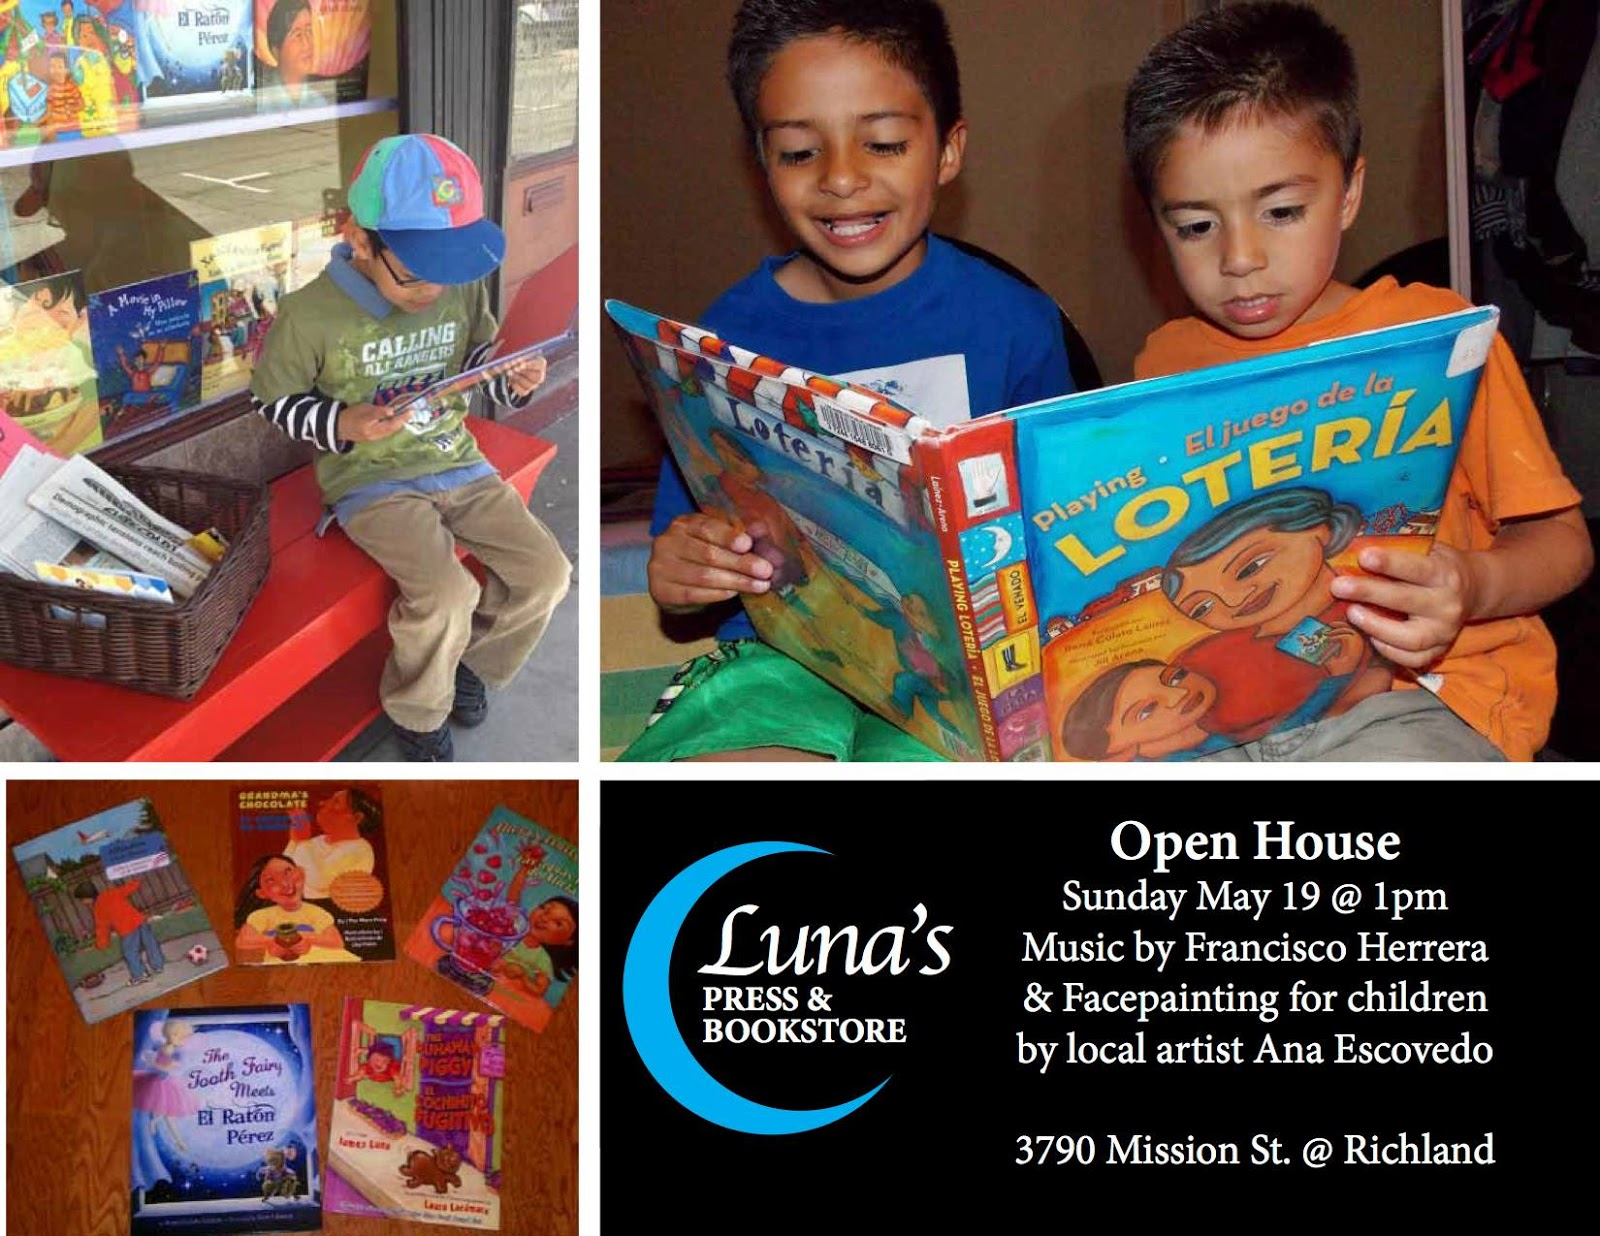 la bloga welcome luna s press bookstore to order books you can friend us on facebook luna s press soon we will have our list of children s books poetry books and arts and crafts